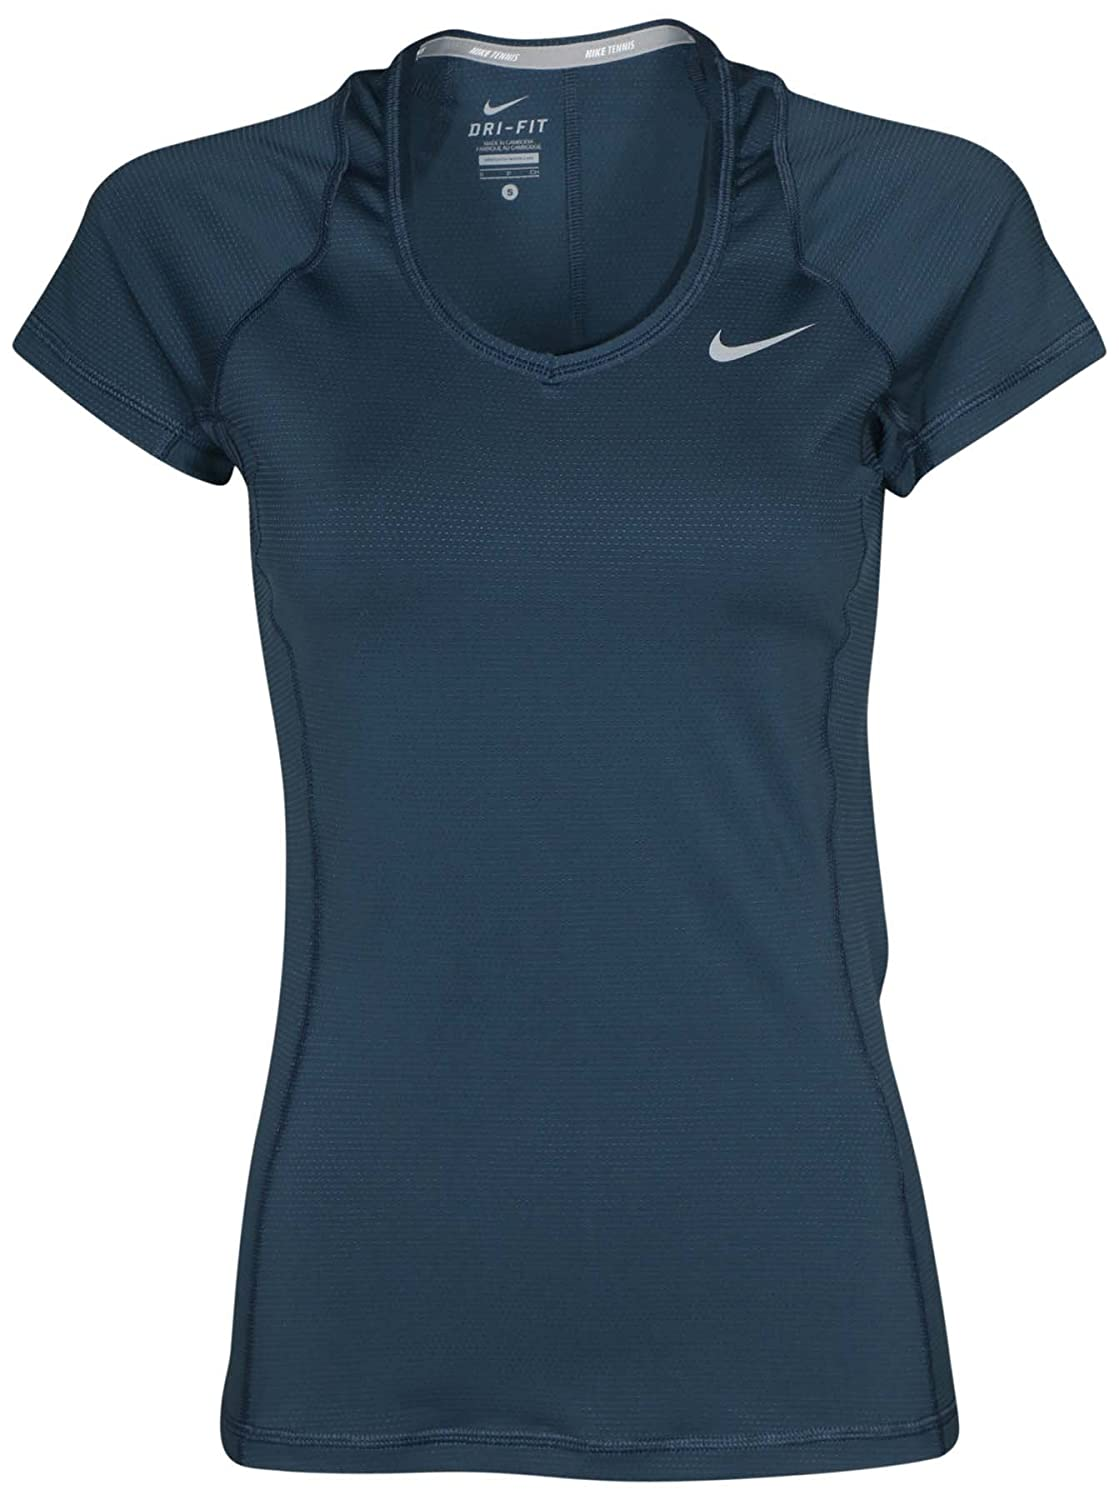 Nike Women's Dri-Fit Novelty Knit Tennis Top